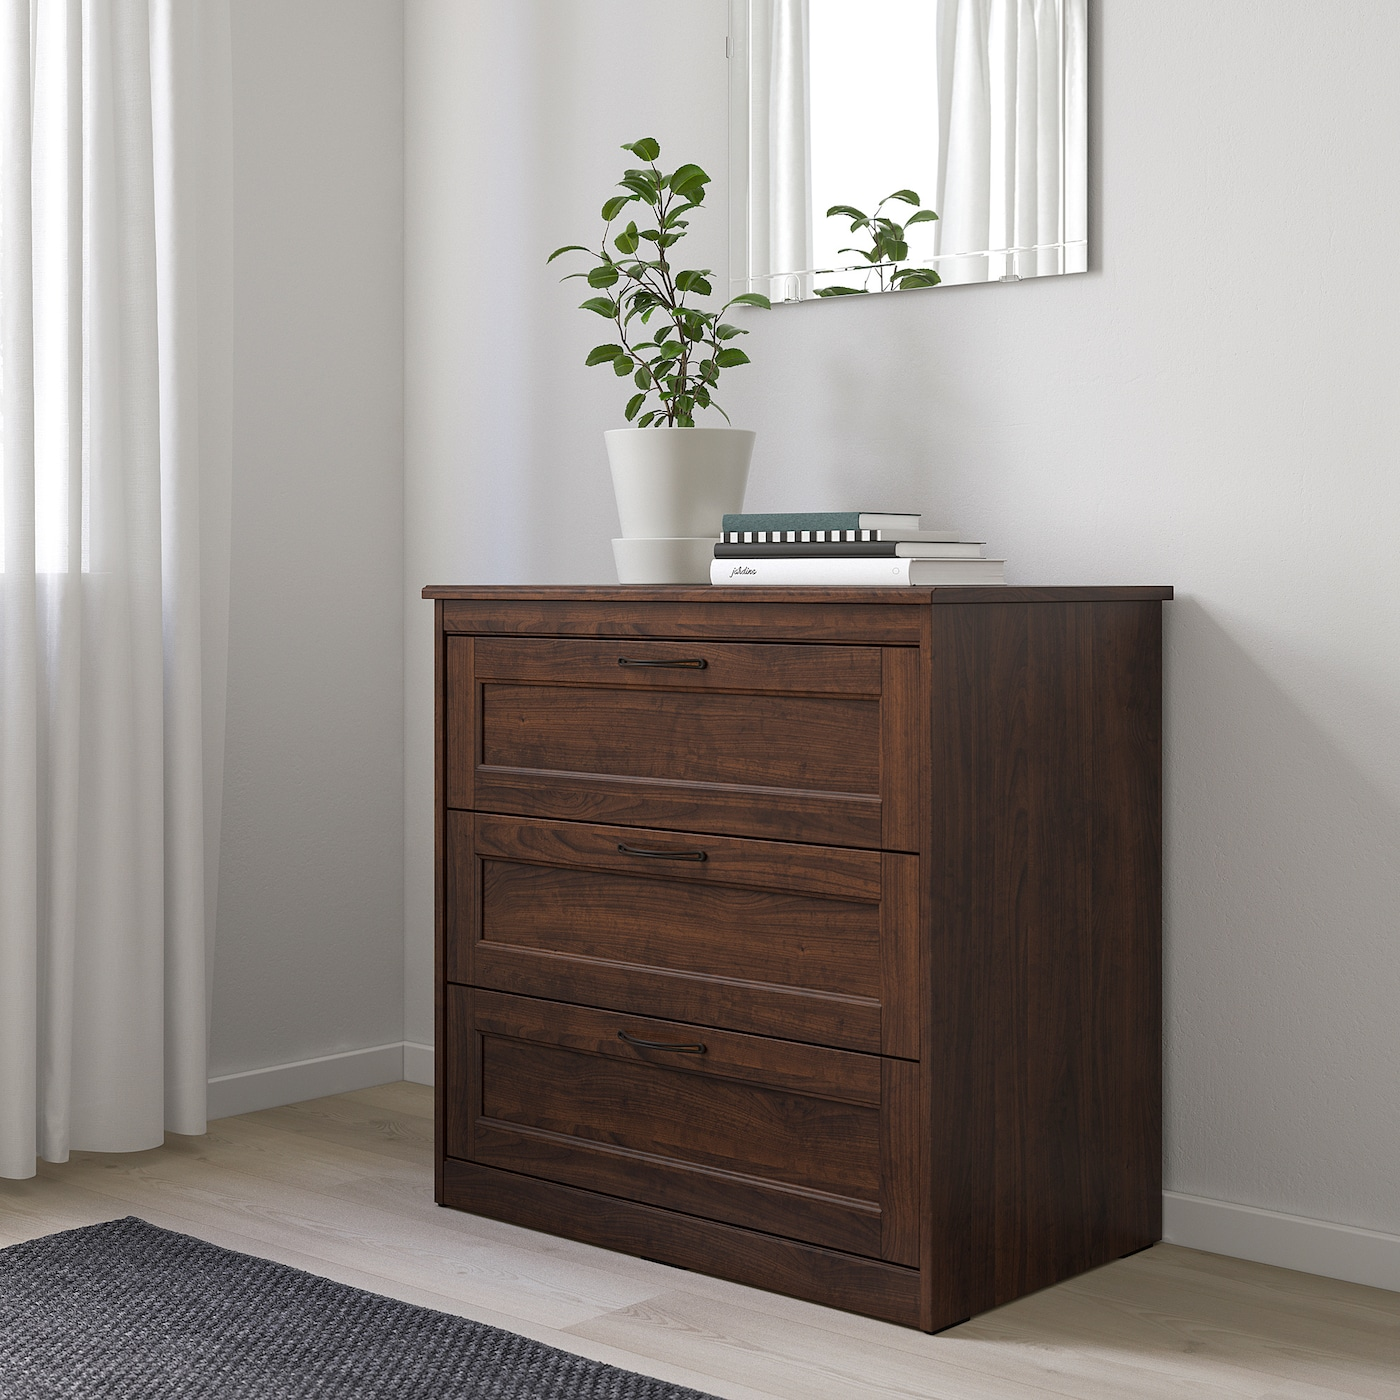 SONGESAND Chest of 3 drawers, brown, 82x81 cm